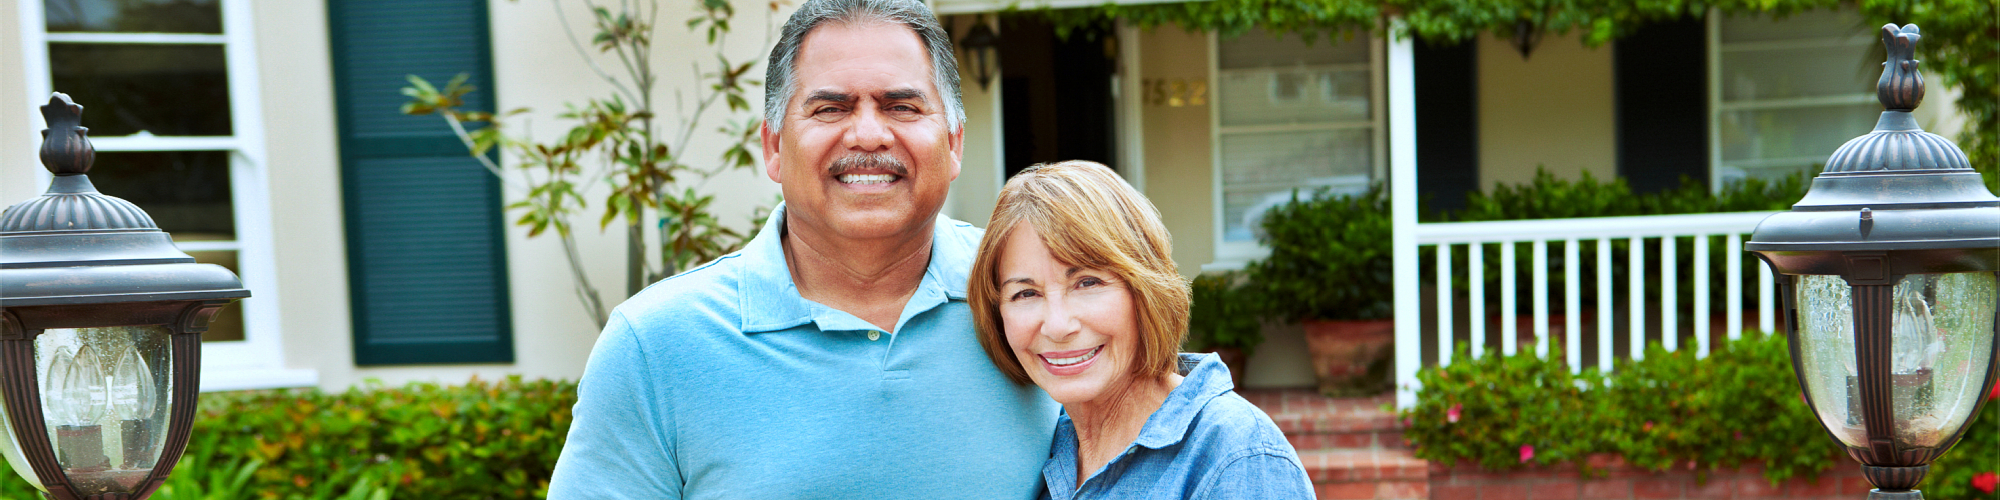 senior couple smiling in front of a house